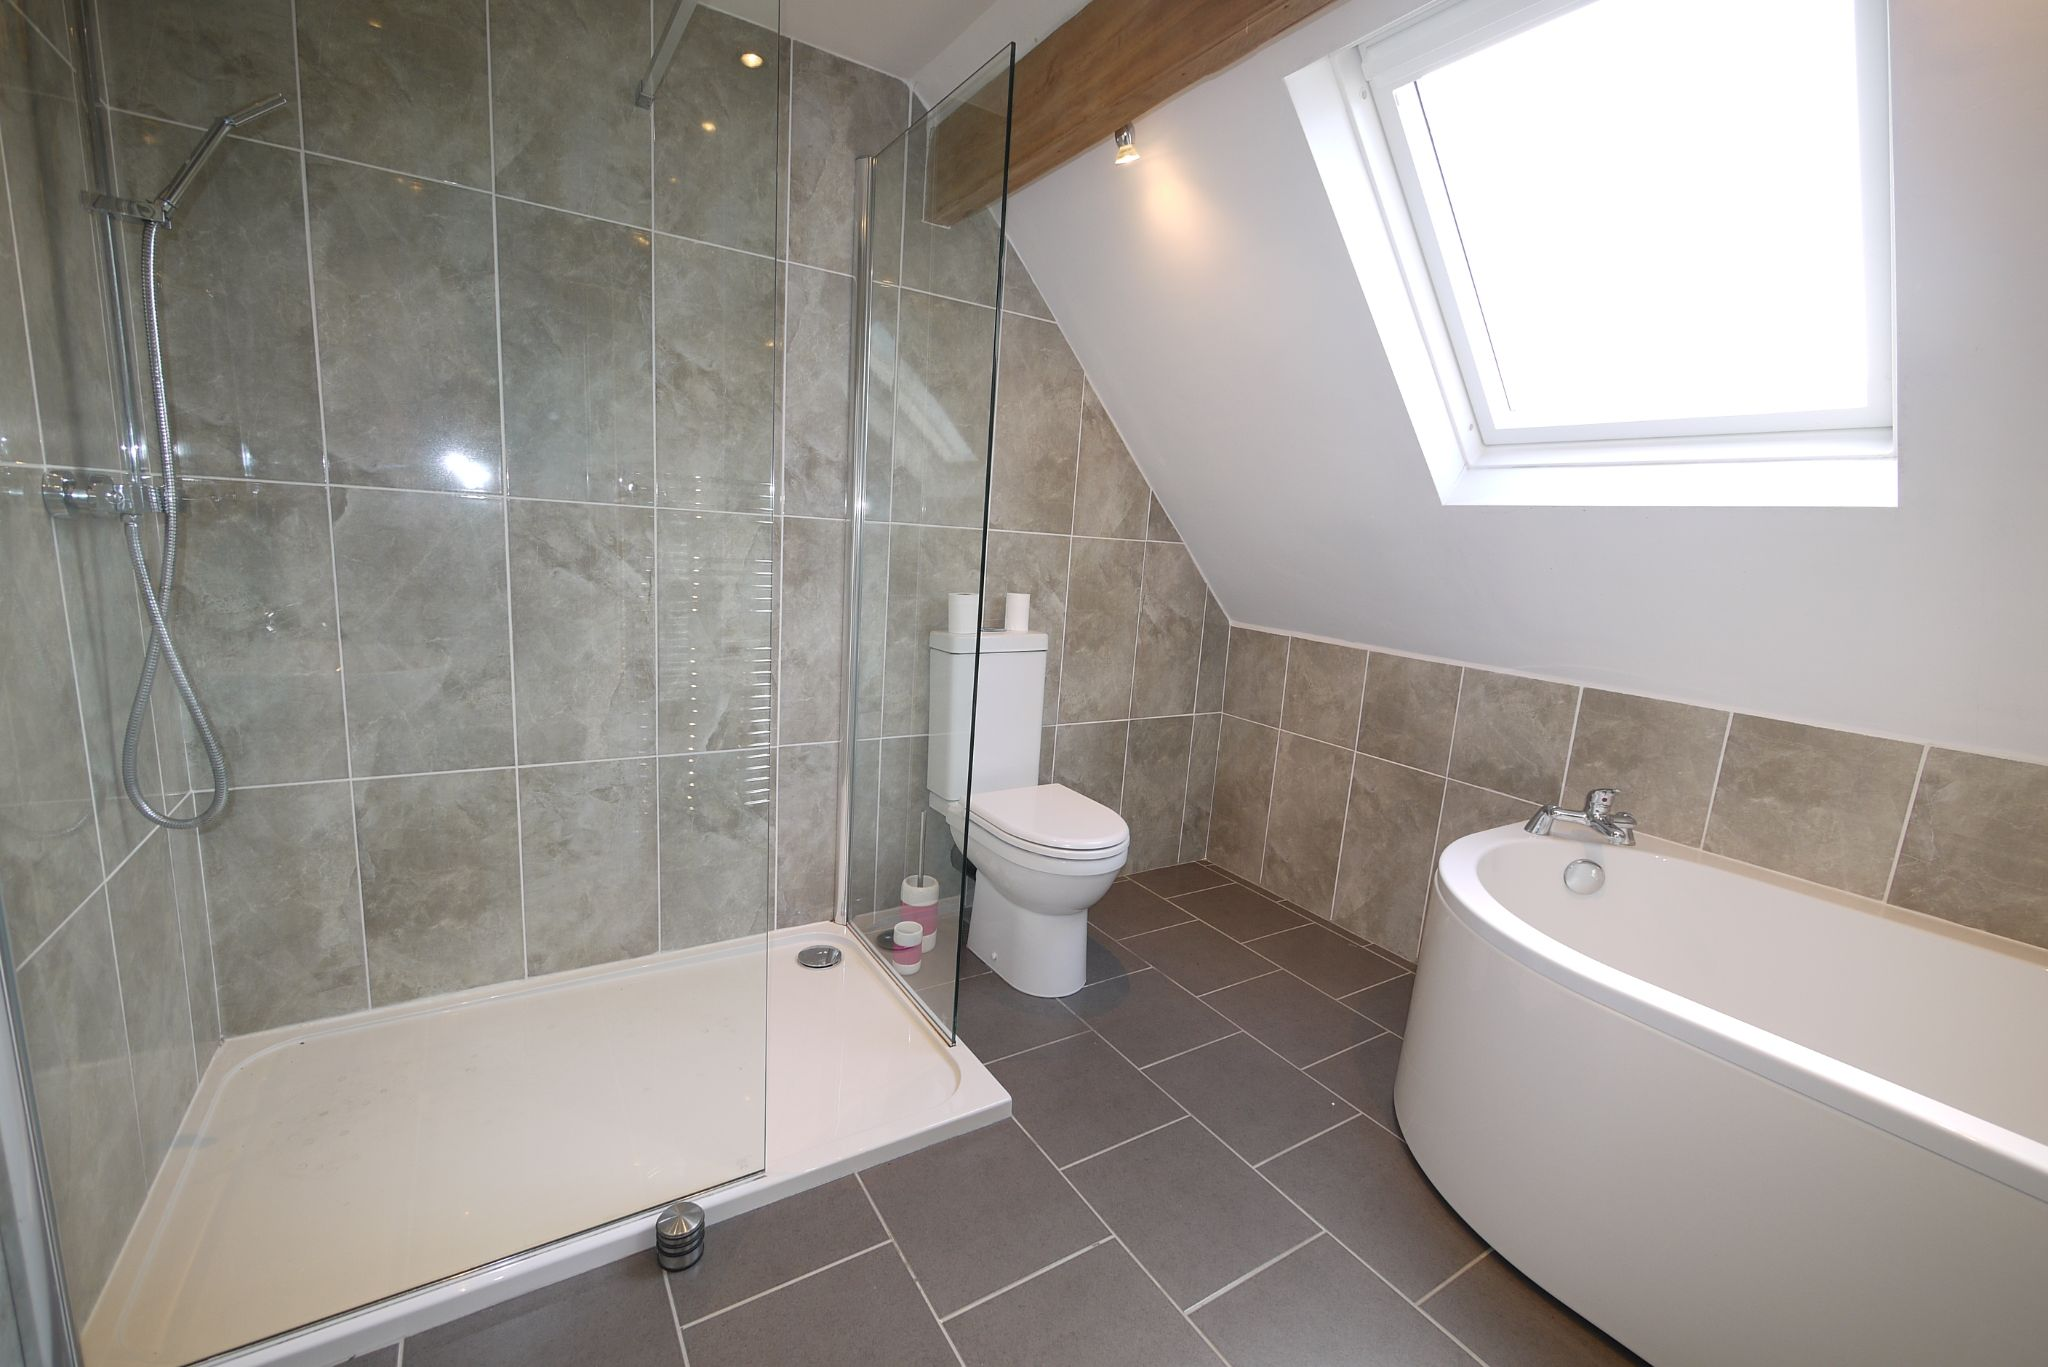 3 bedroom detached house SSTC in Brighouse - Photograph 19.